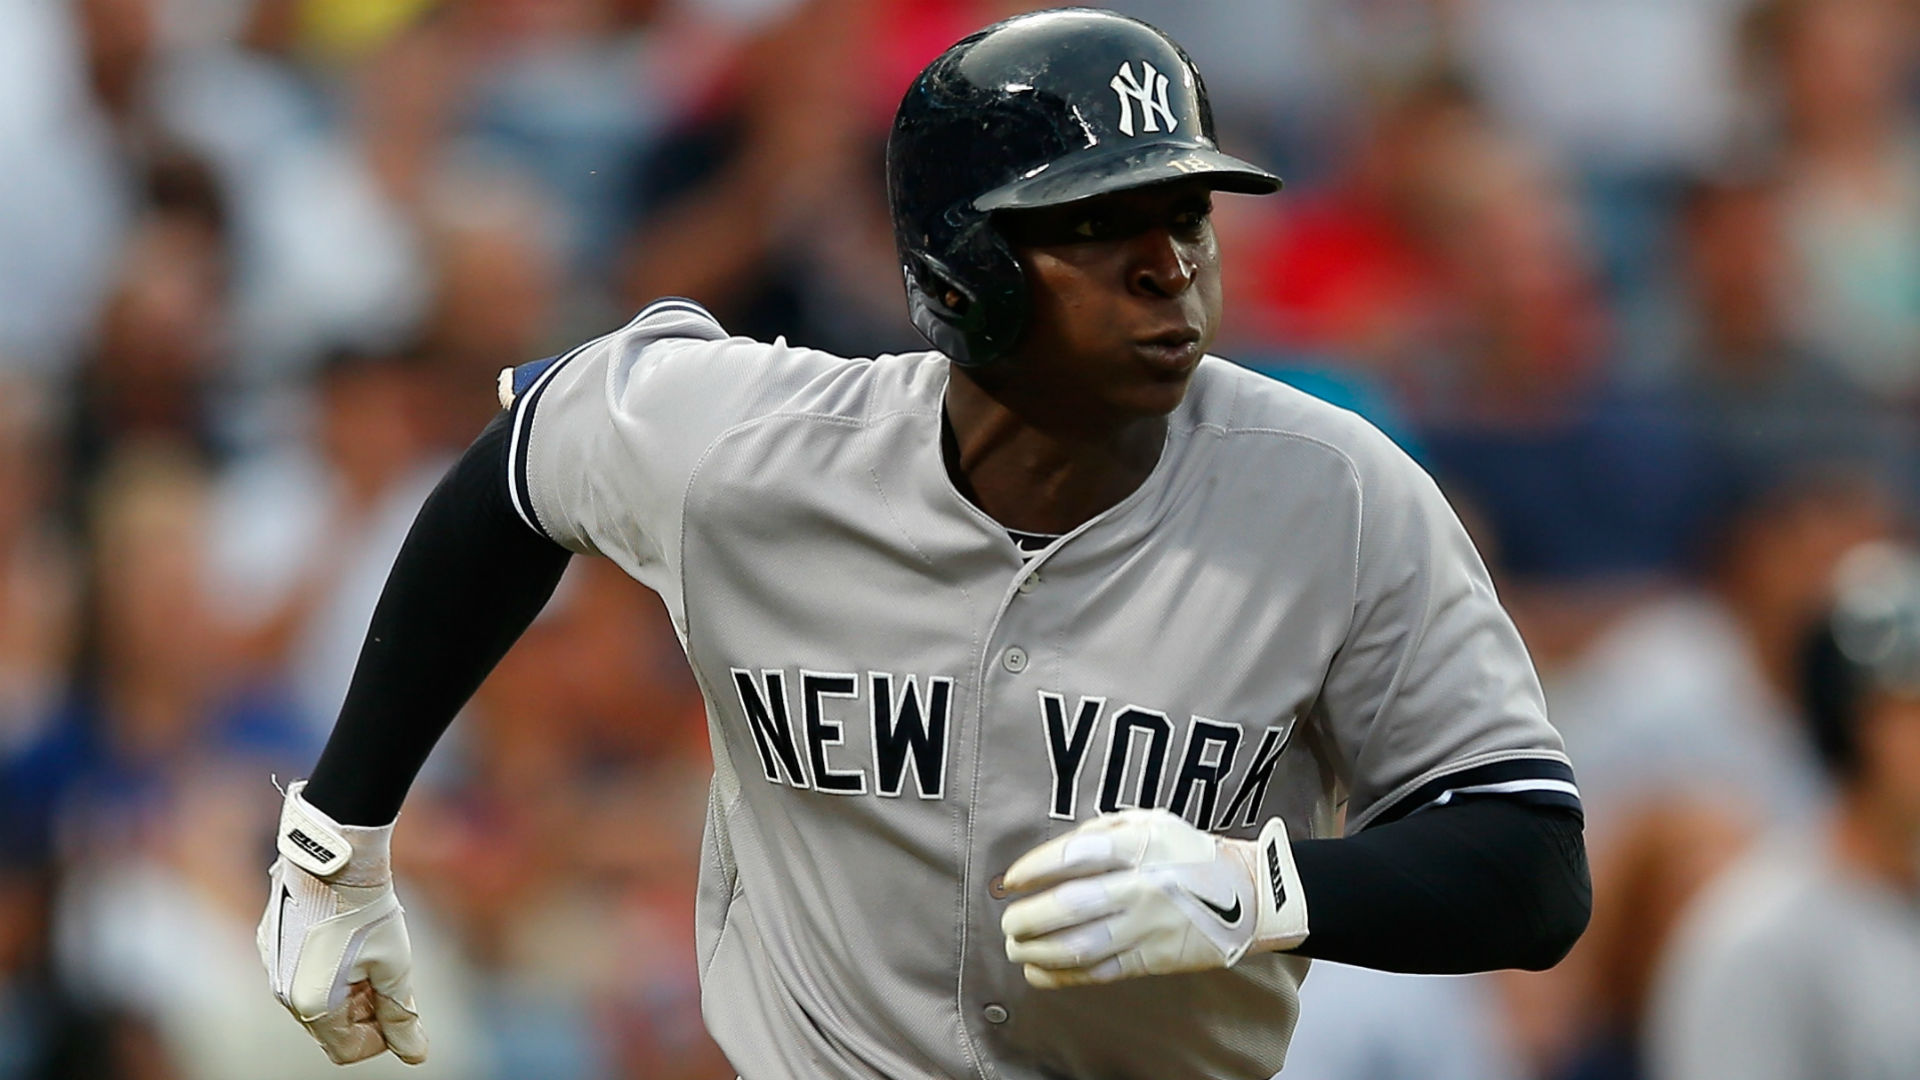 Didi Gregorius Suffers Shoulder Injury, Pulls out of 2017 World Baseball Classic